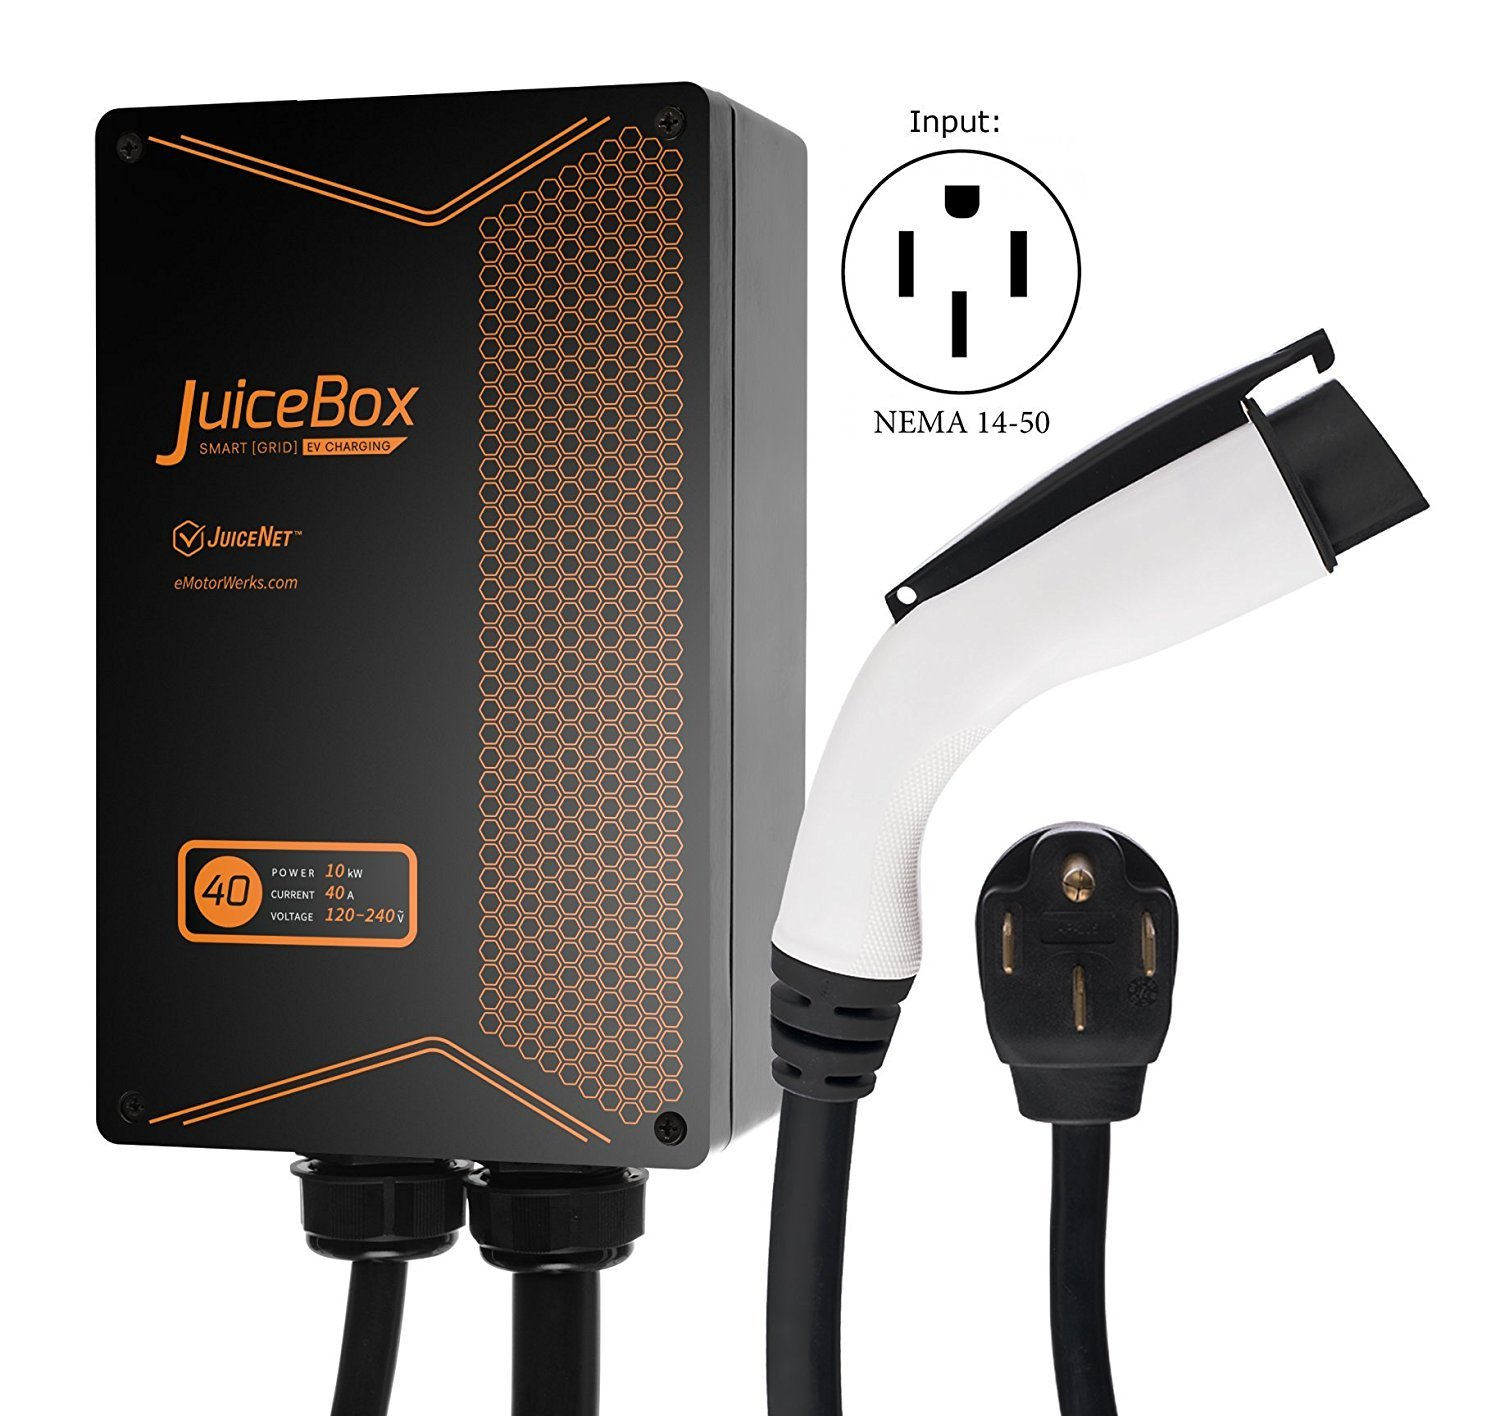 JuiceBox 40A Plug-in Electric Vehicle L2 Home Charging Station with 24-foot cable and NEMA 14-50 plug